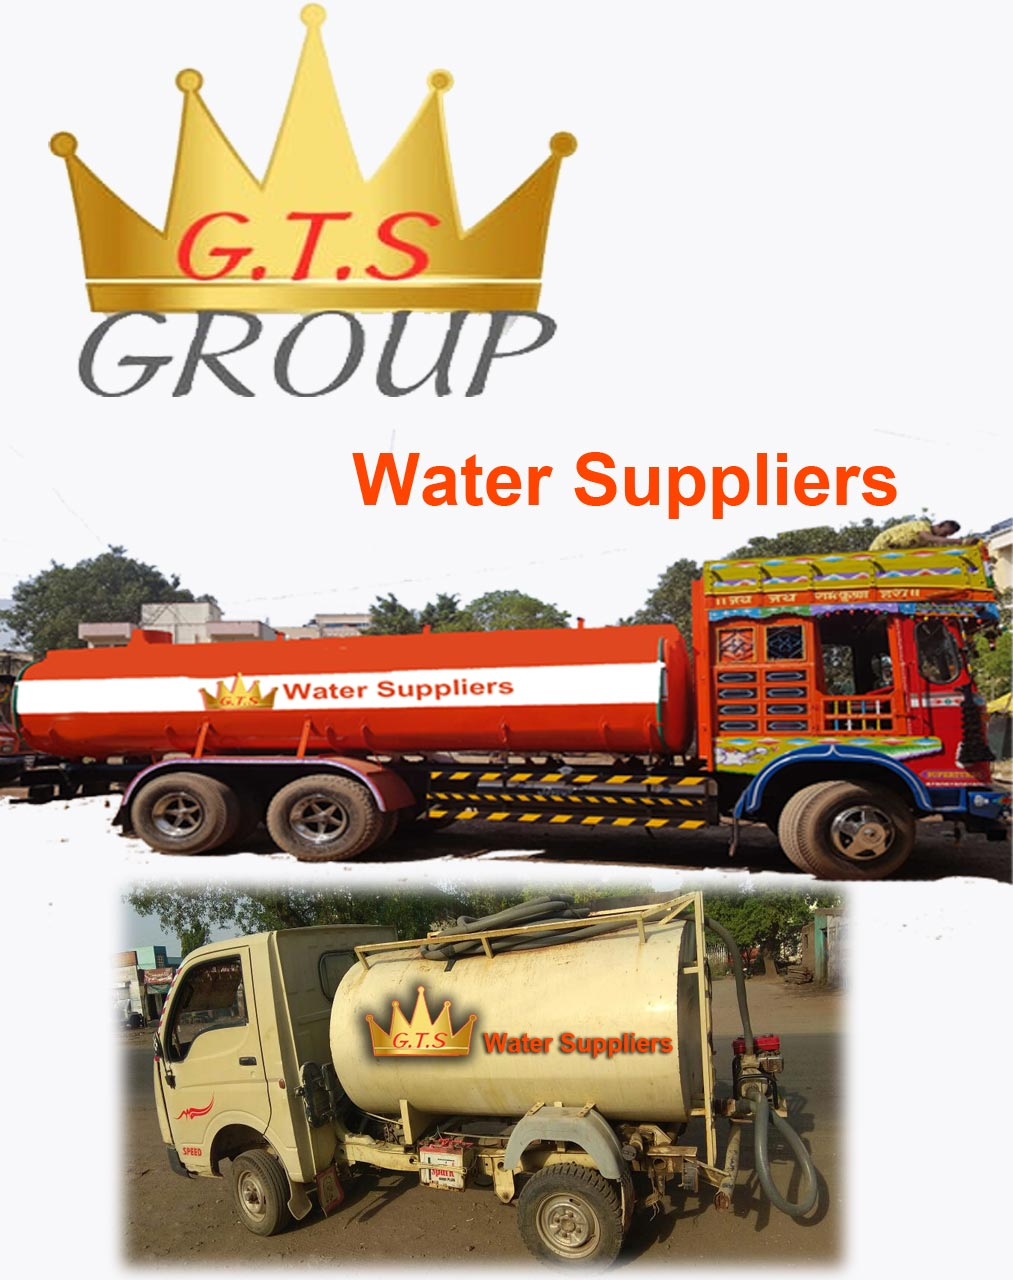 G.T.S WATER SUPPLIERS